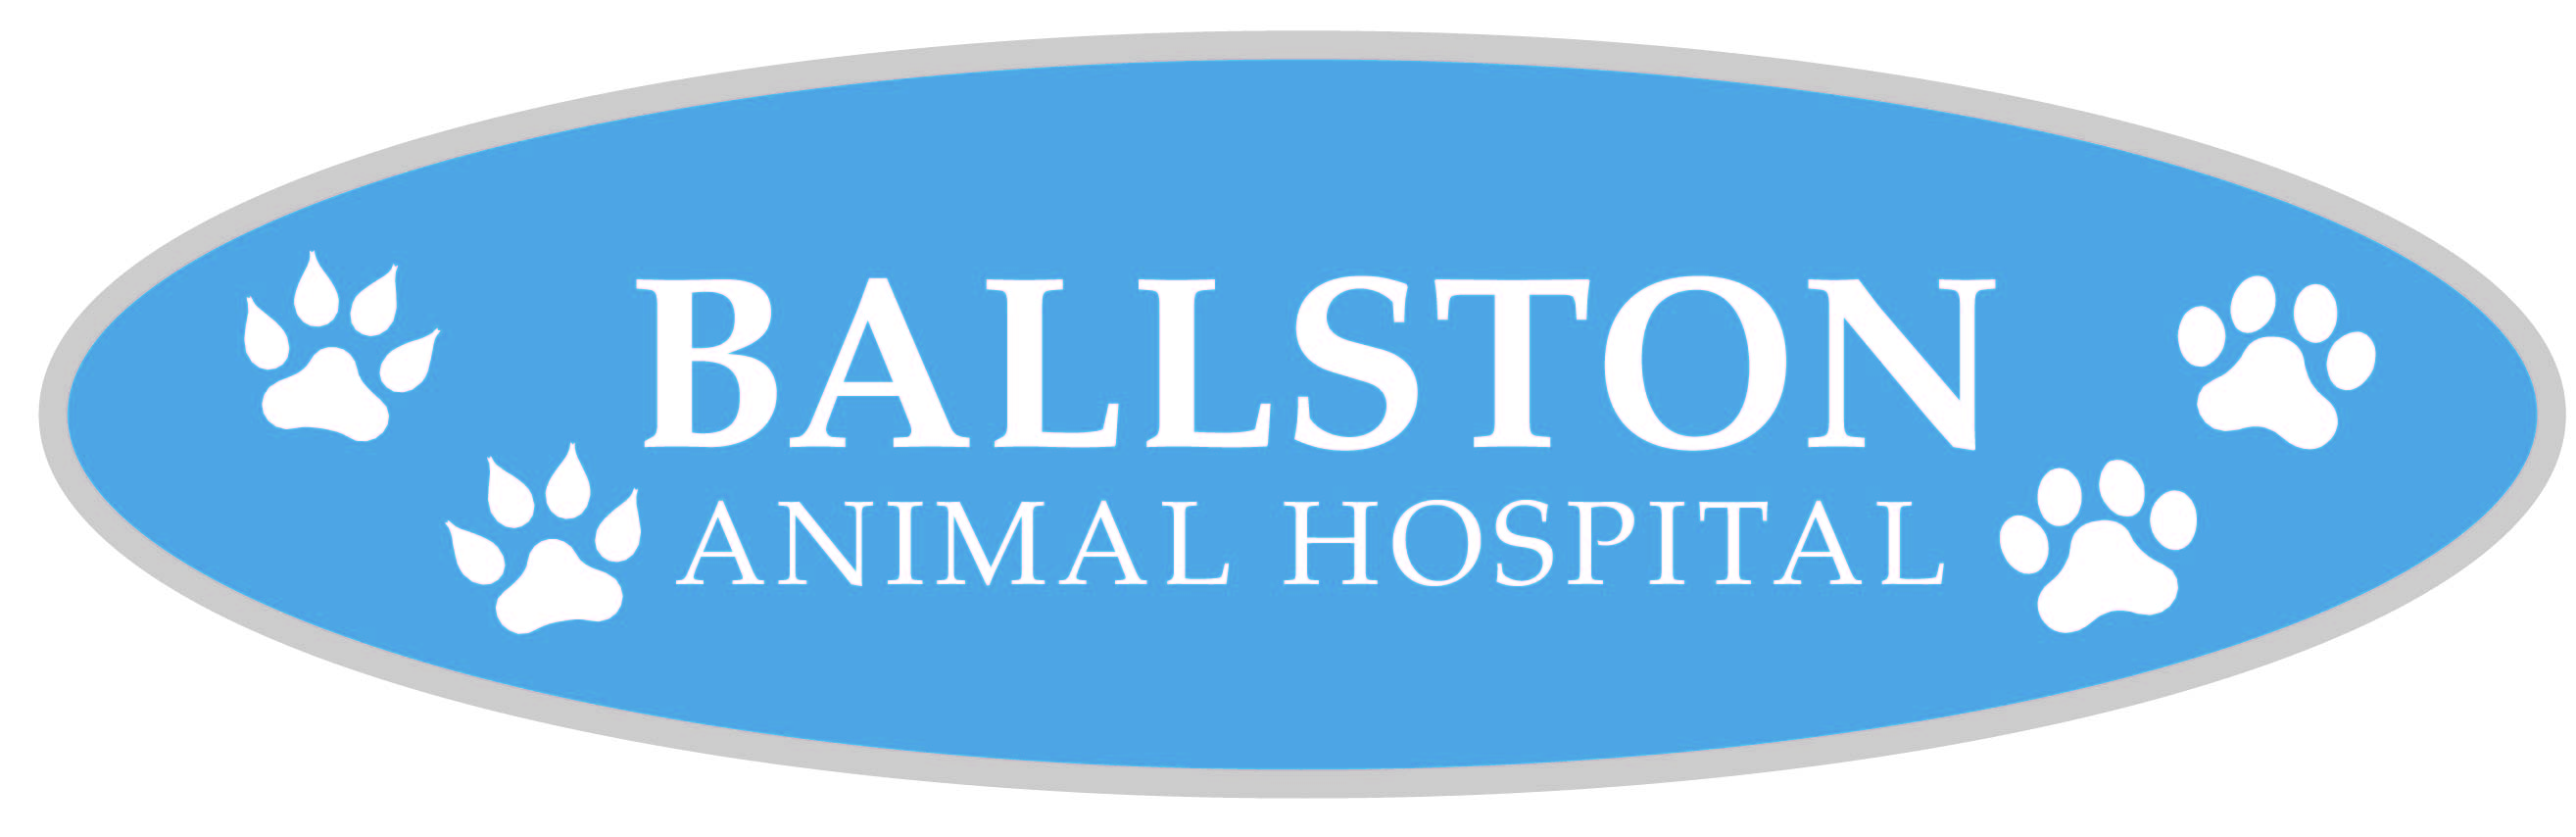 Ballston Animal Hospital